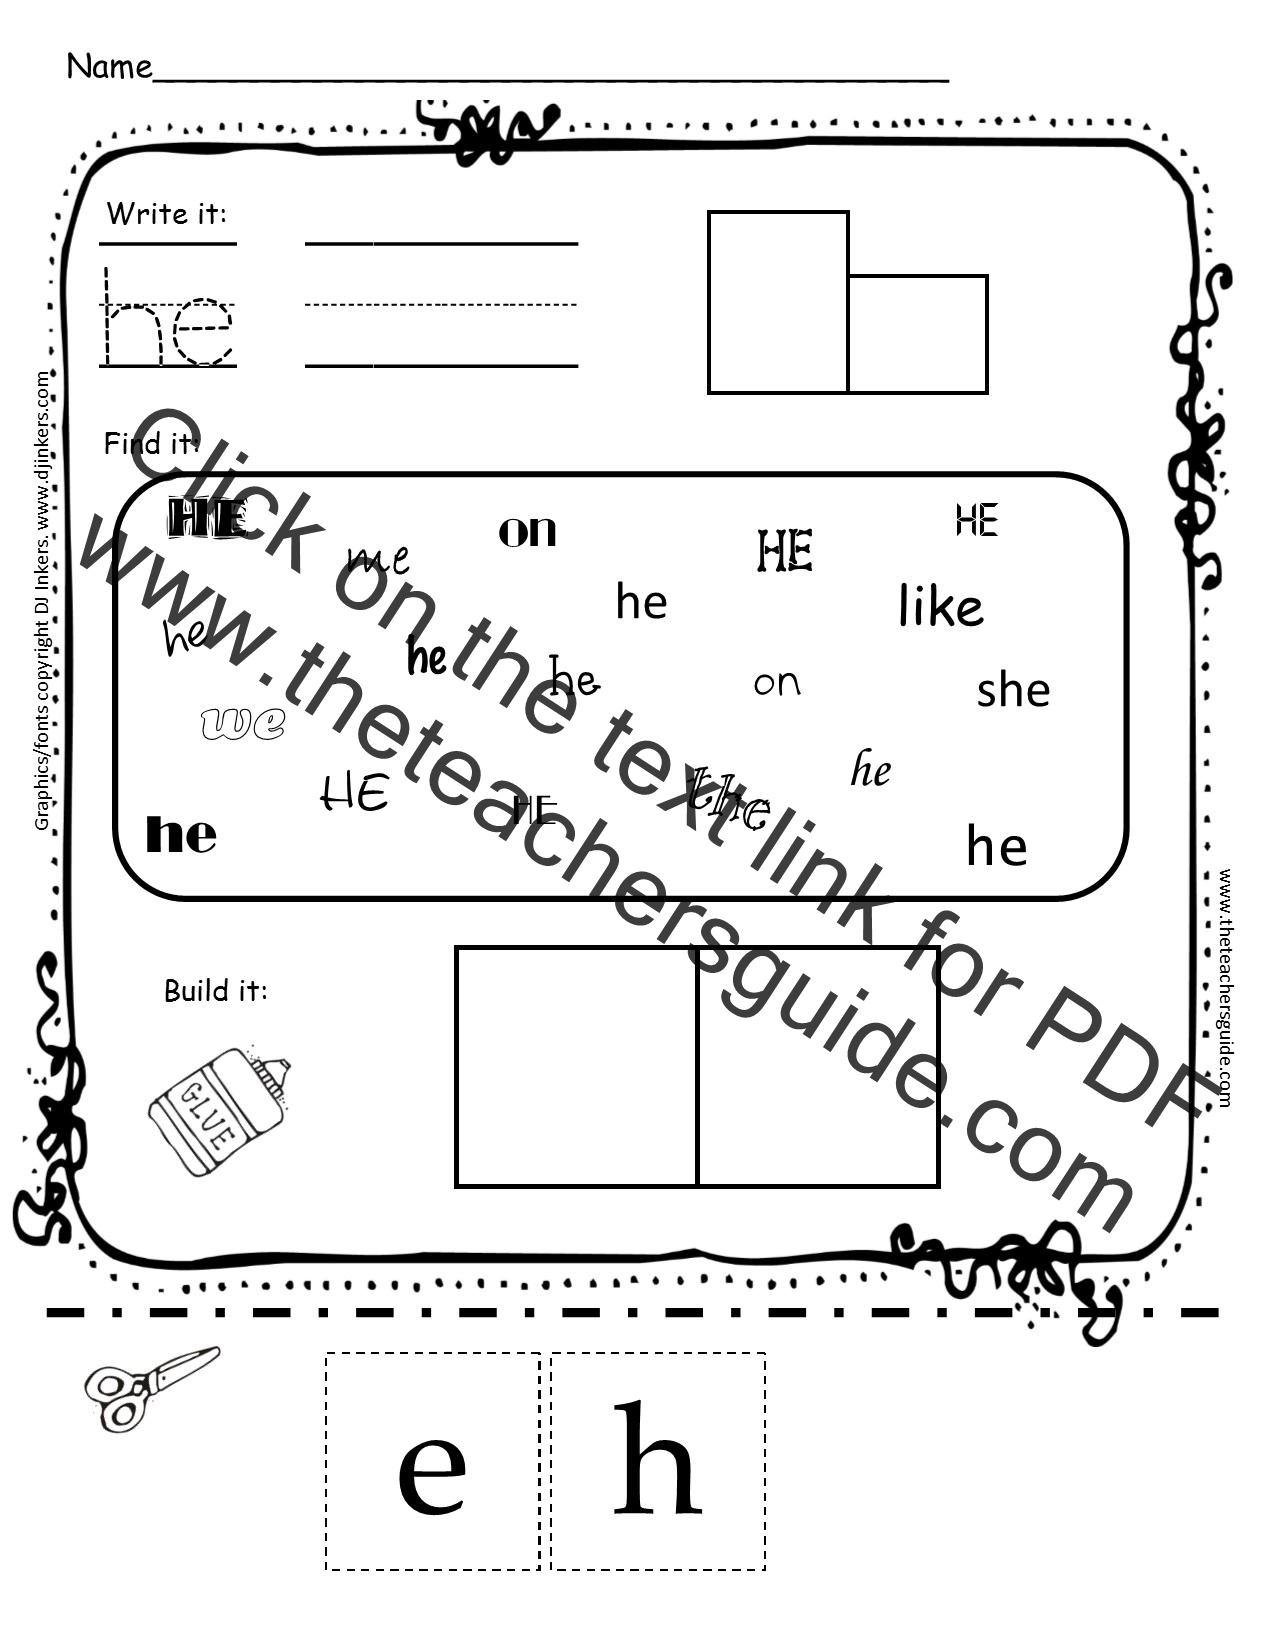 Kindergarten Sight Word Printouts From The Teacher S Guide